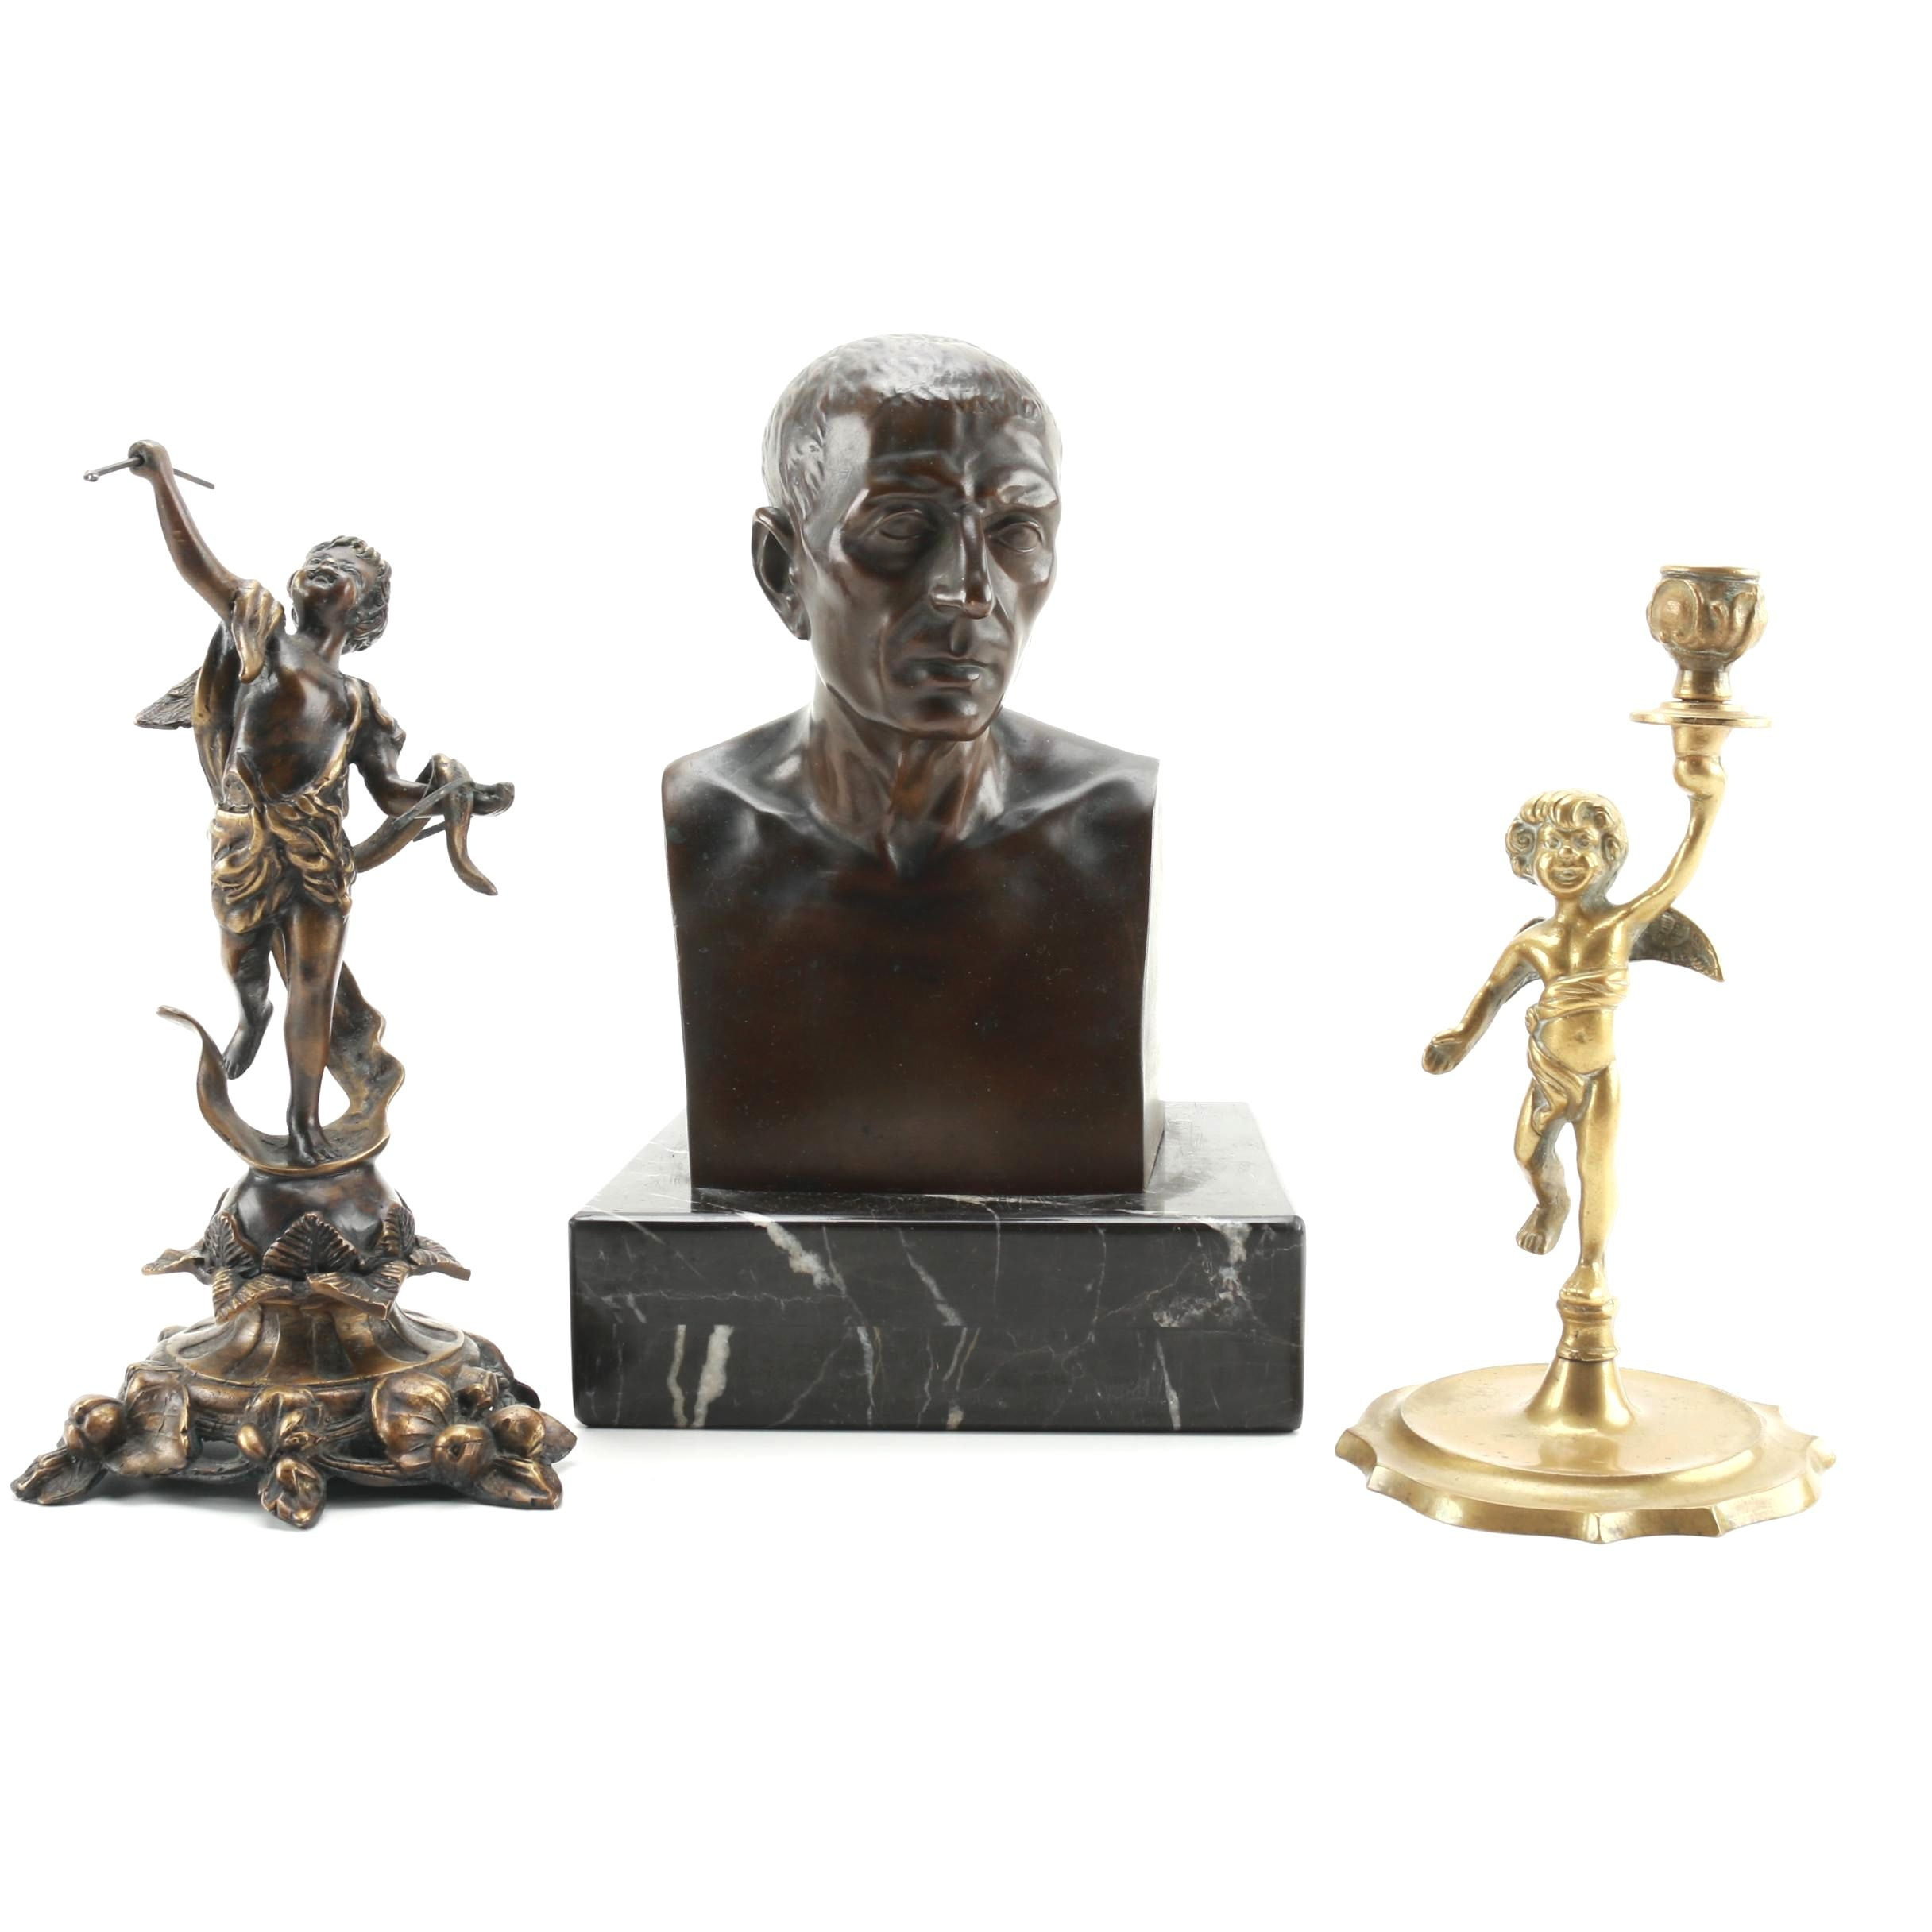 Ferdinand Barbedienne Foundry Bust and Two Putti Statuettes